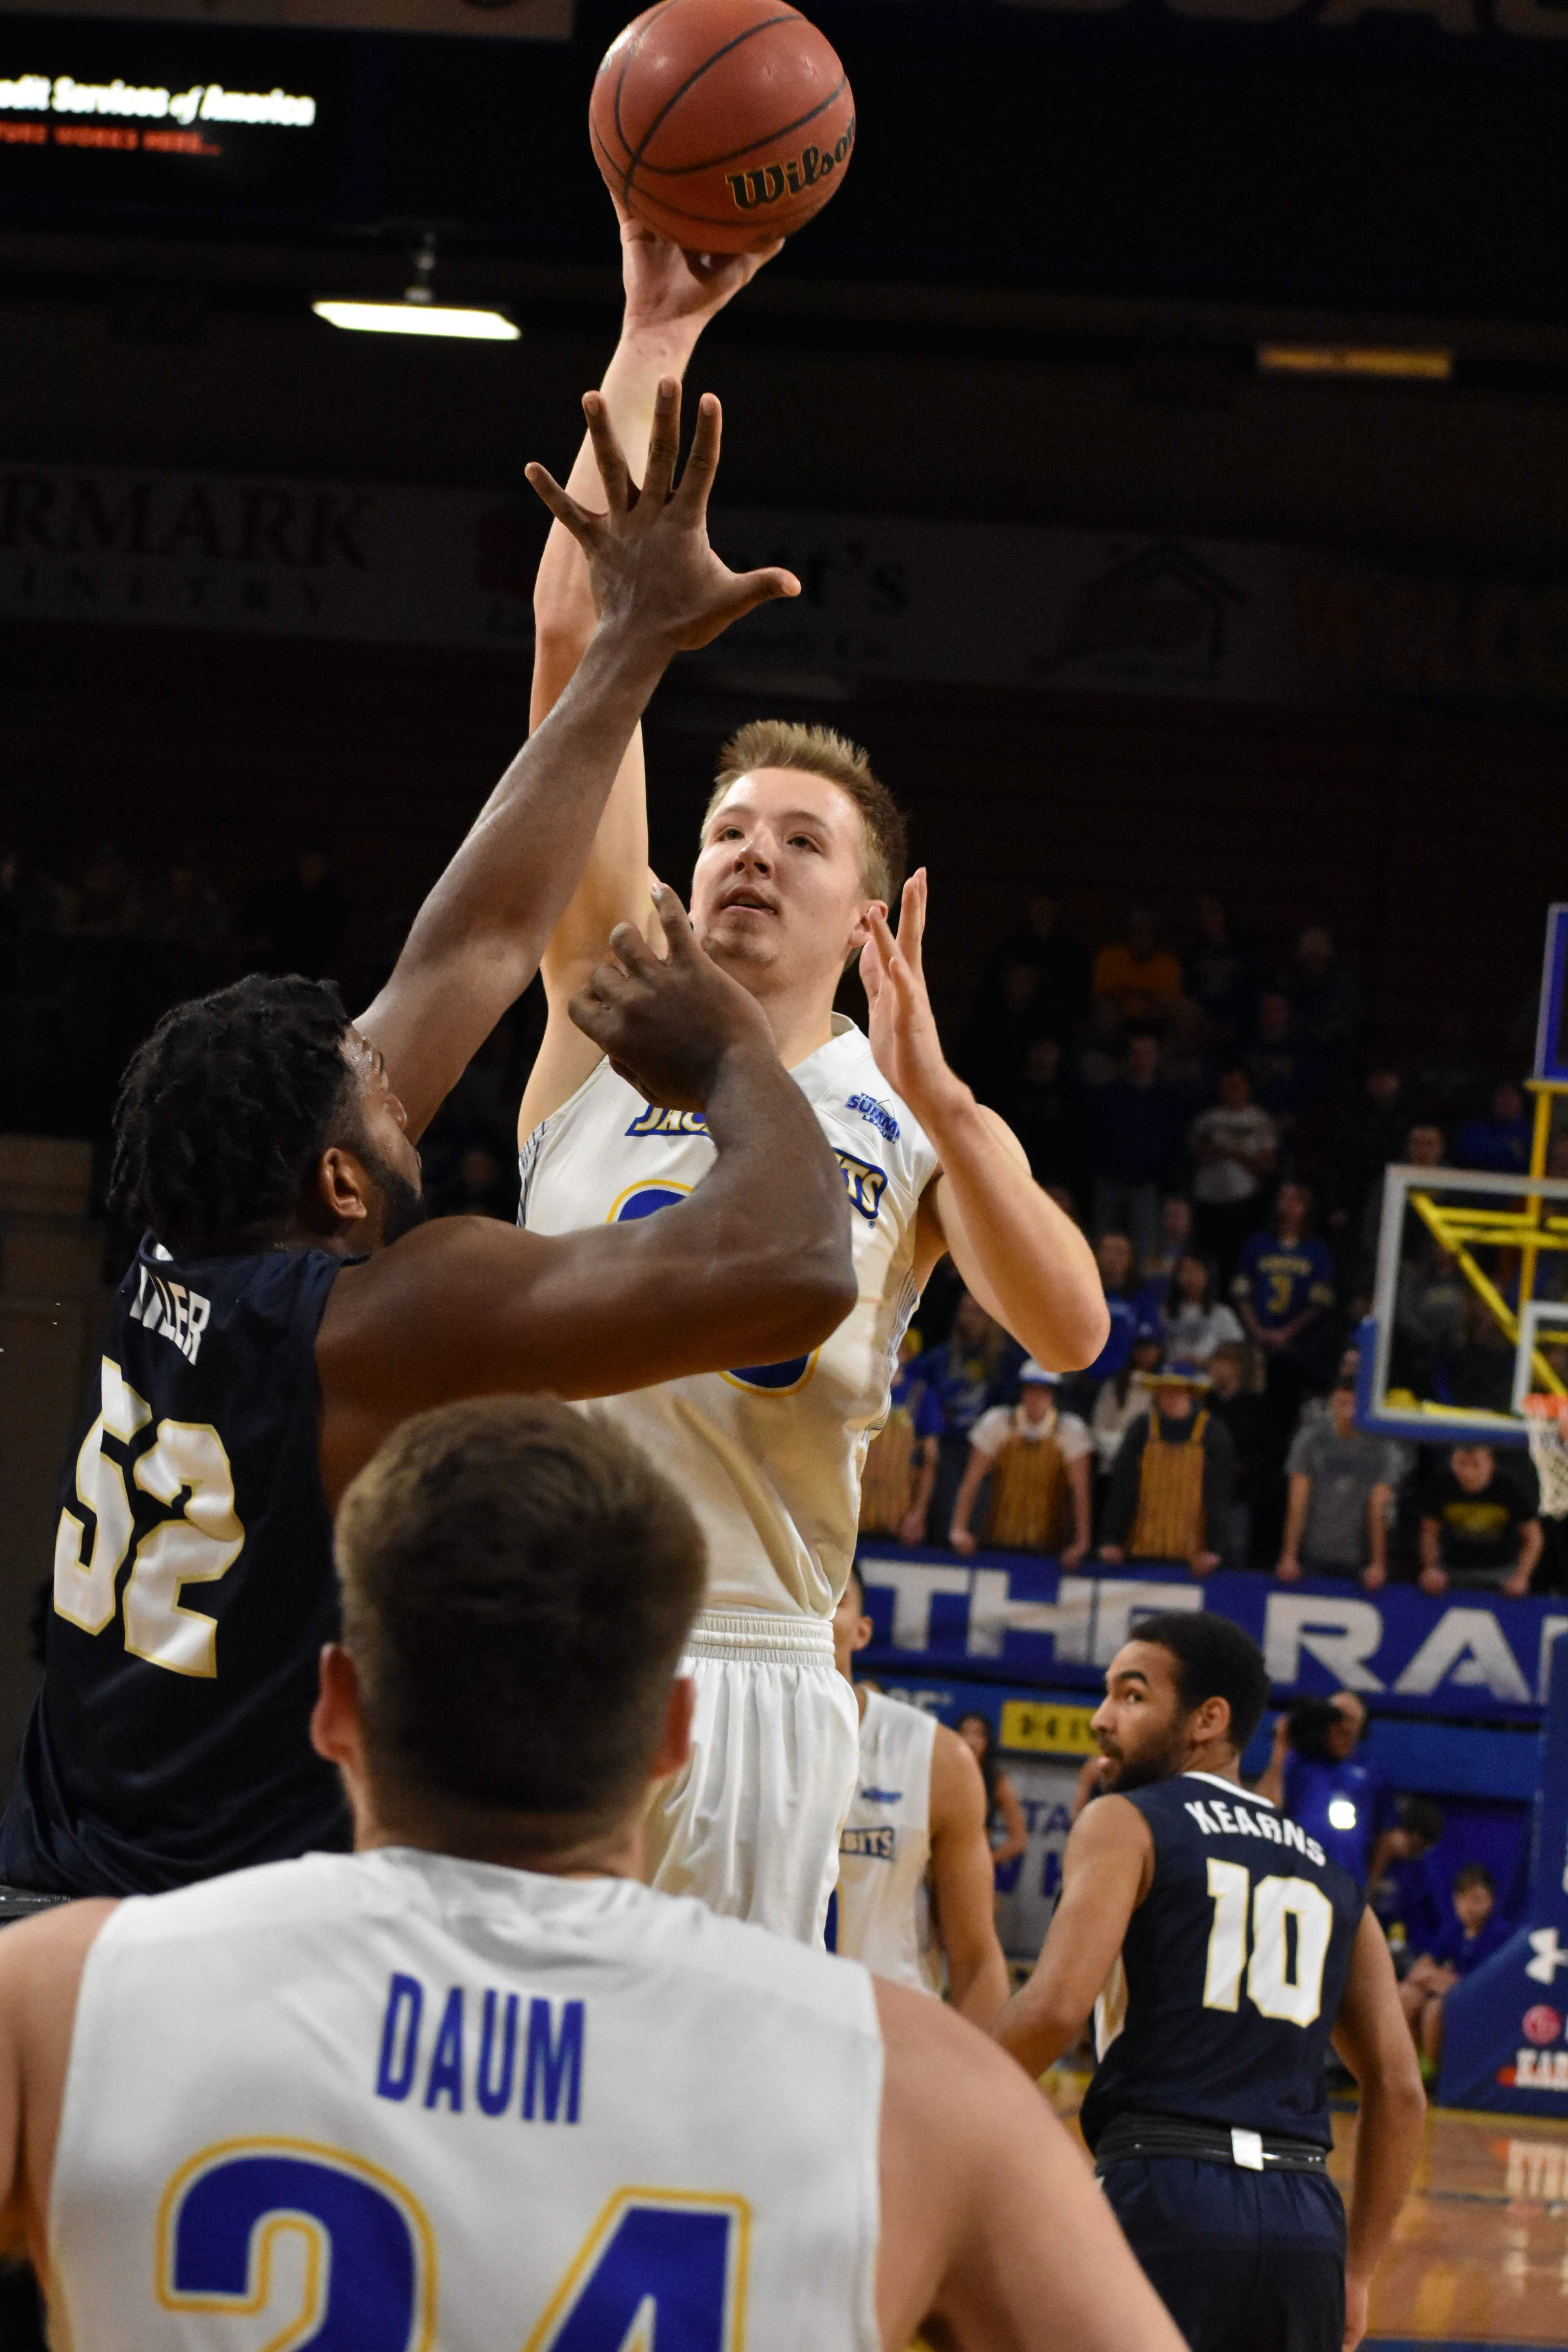 Senior forward guard Reed Tellinghuisen (23) takes a jump shot over Oral Roberts forward Chris Miller (52) during the first half of the game Thursday, Jan. 11. The Jacks beat the Golden Eagles 78-73.